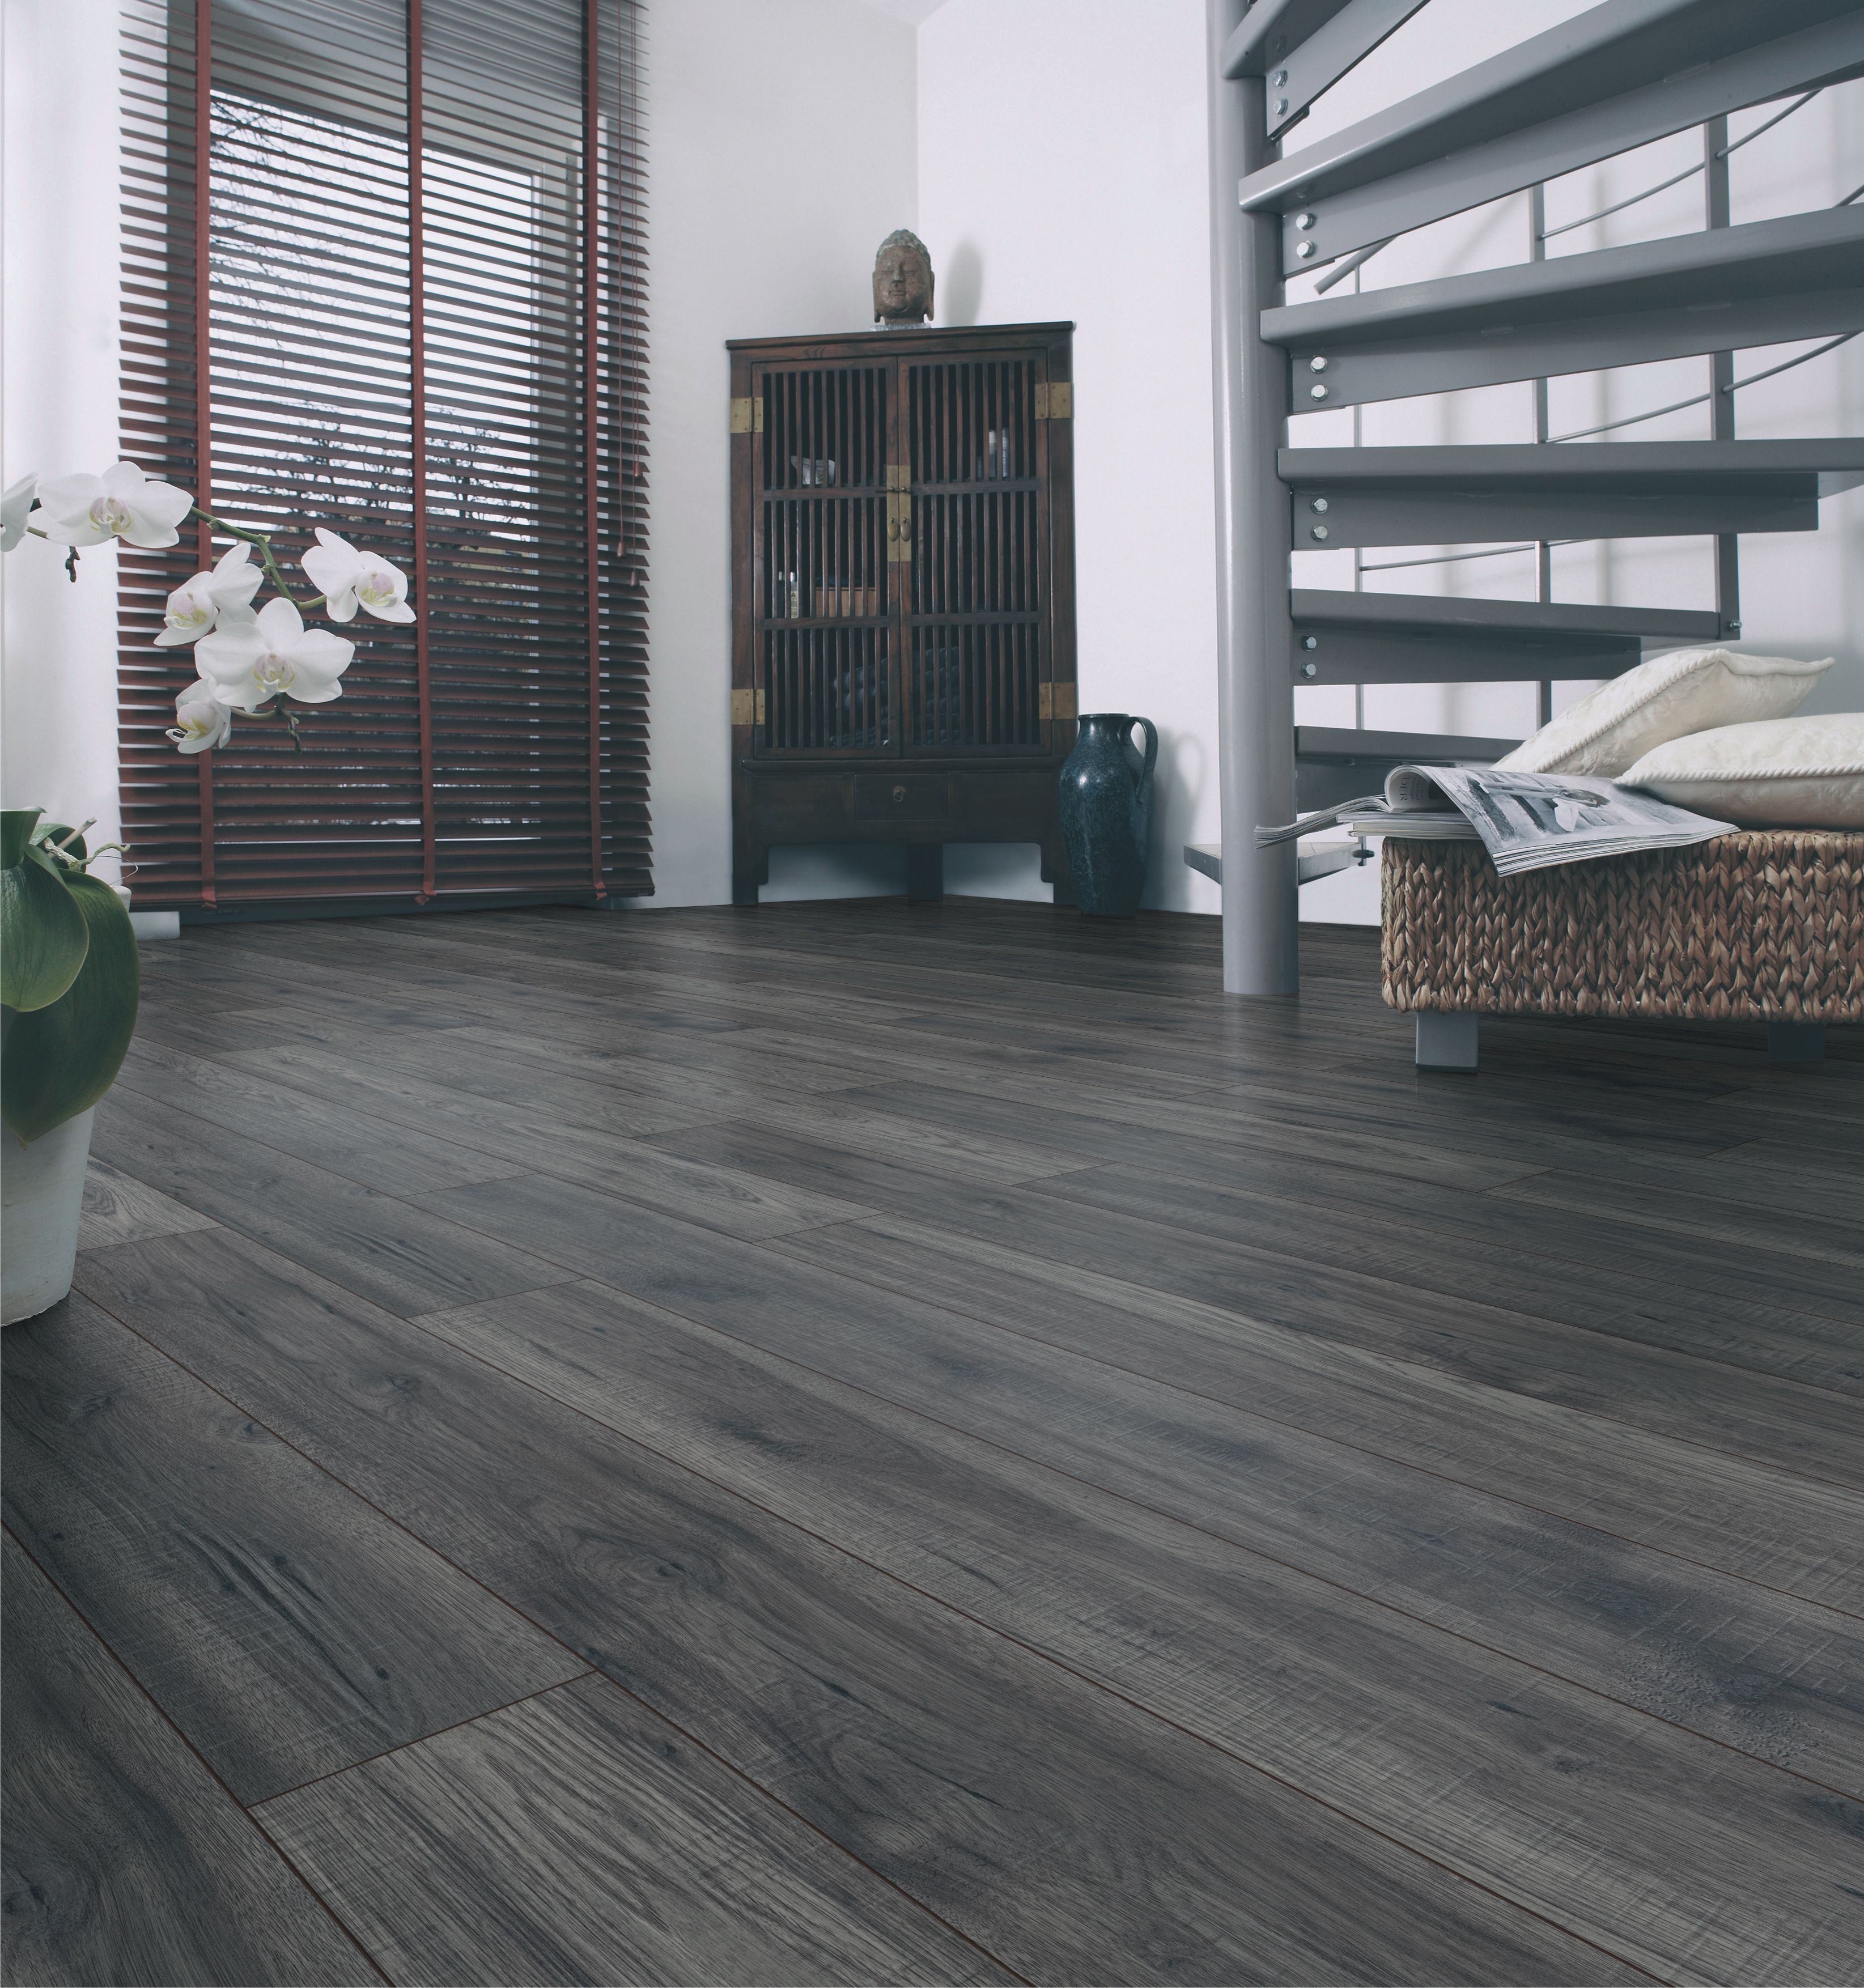 Ostend Berkeley Effect Antique Finish Laminate Flooring 176 M2 Pack